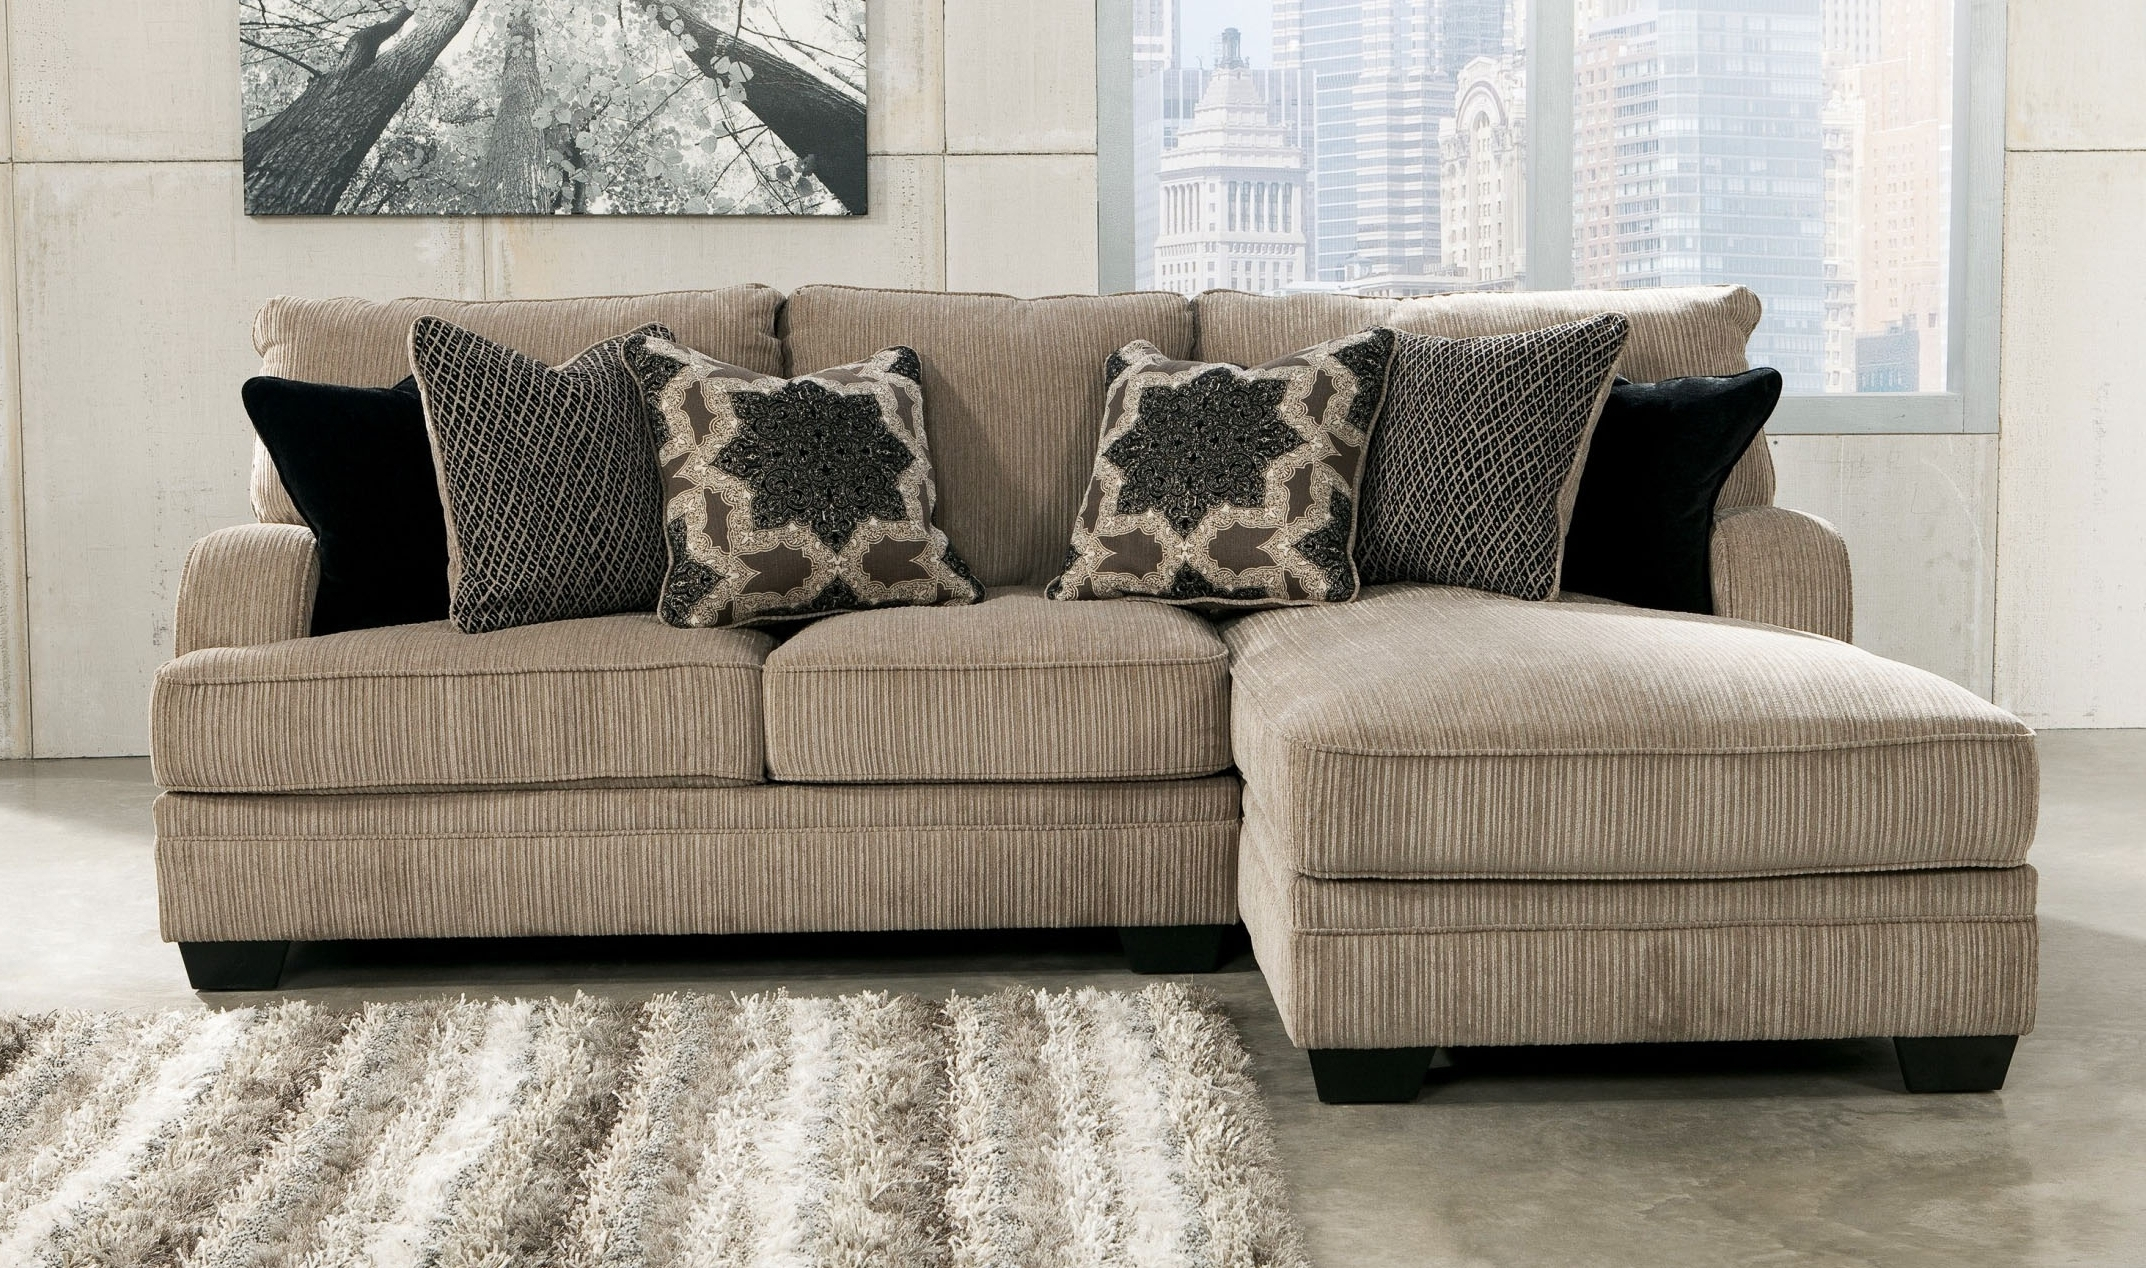 Inexpensive Sectional Sofas For Small Spaces Inside Well Known Stylish Inexpensive Sectional Sofas For Small Spaces (View 5 of 20)